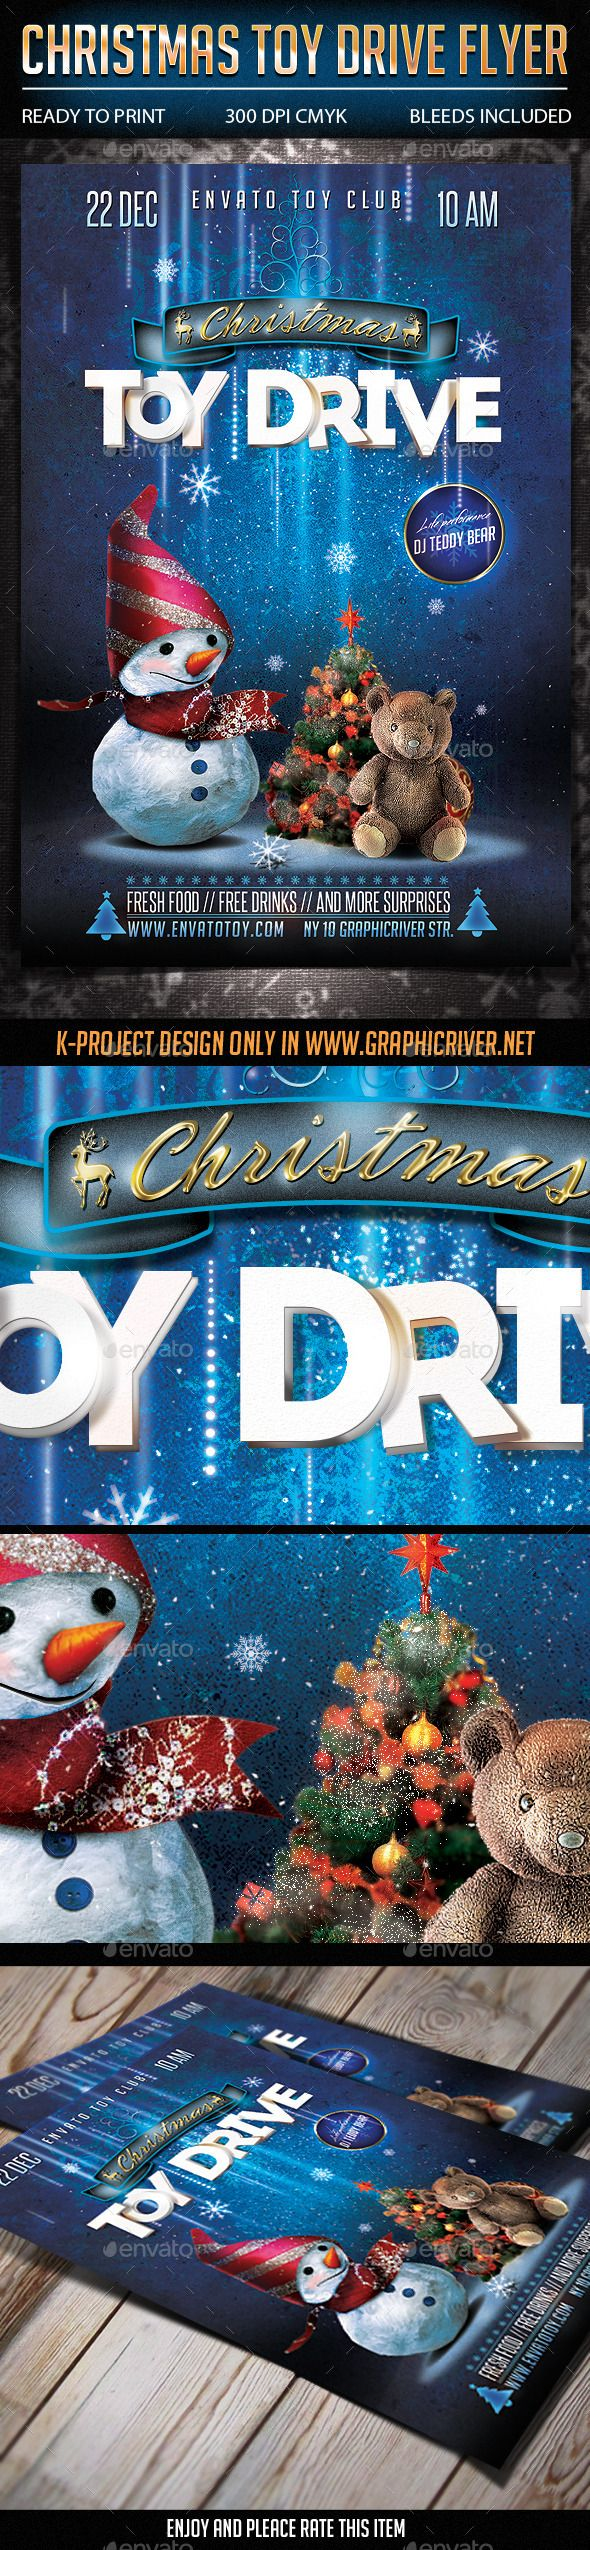 christmas toy drive flyer flyer template toys and design christmas toy drive flyer template psd buy and